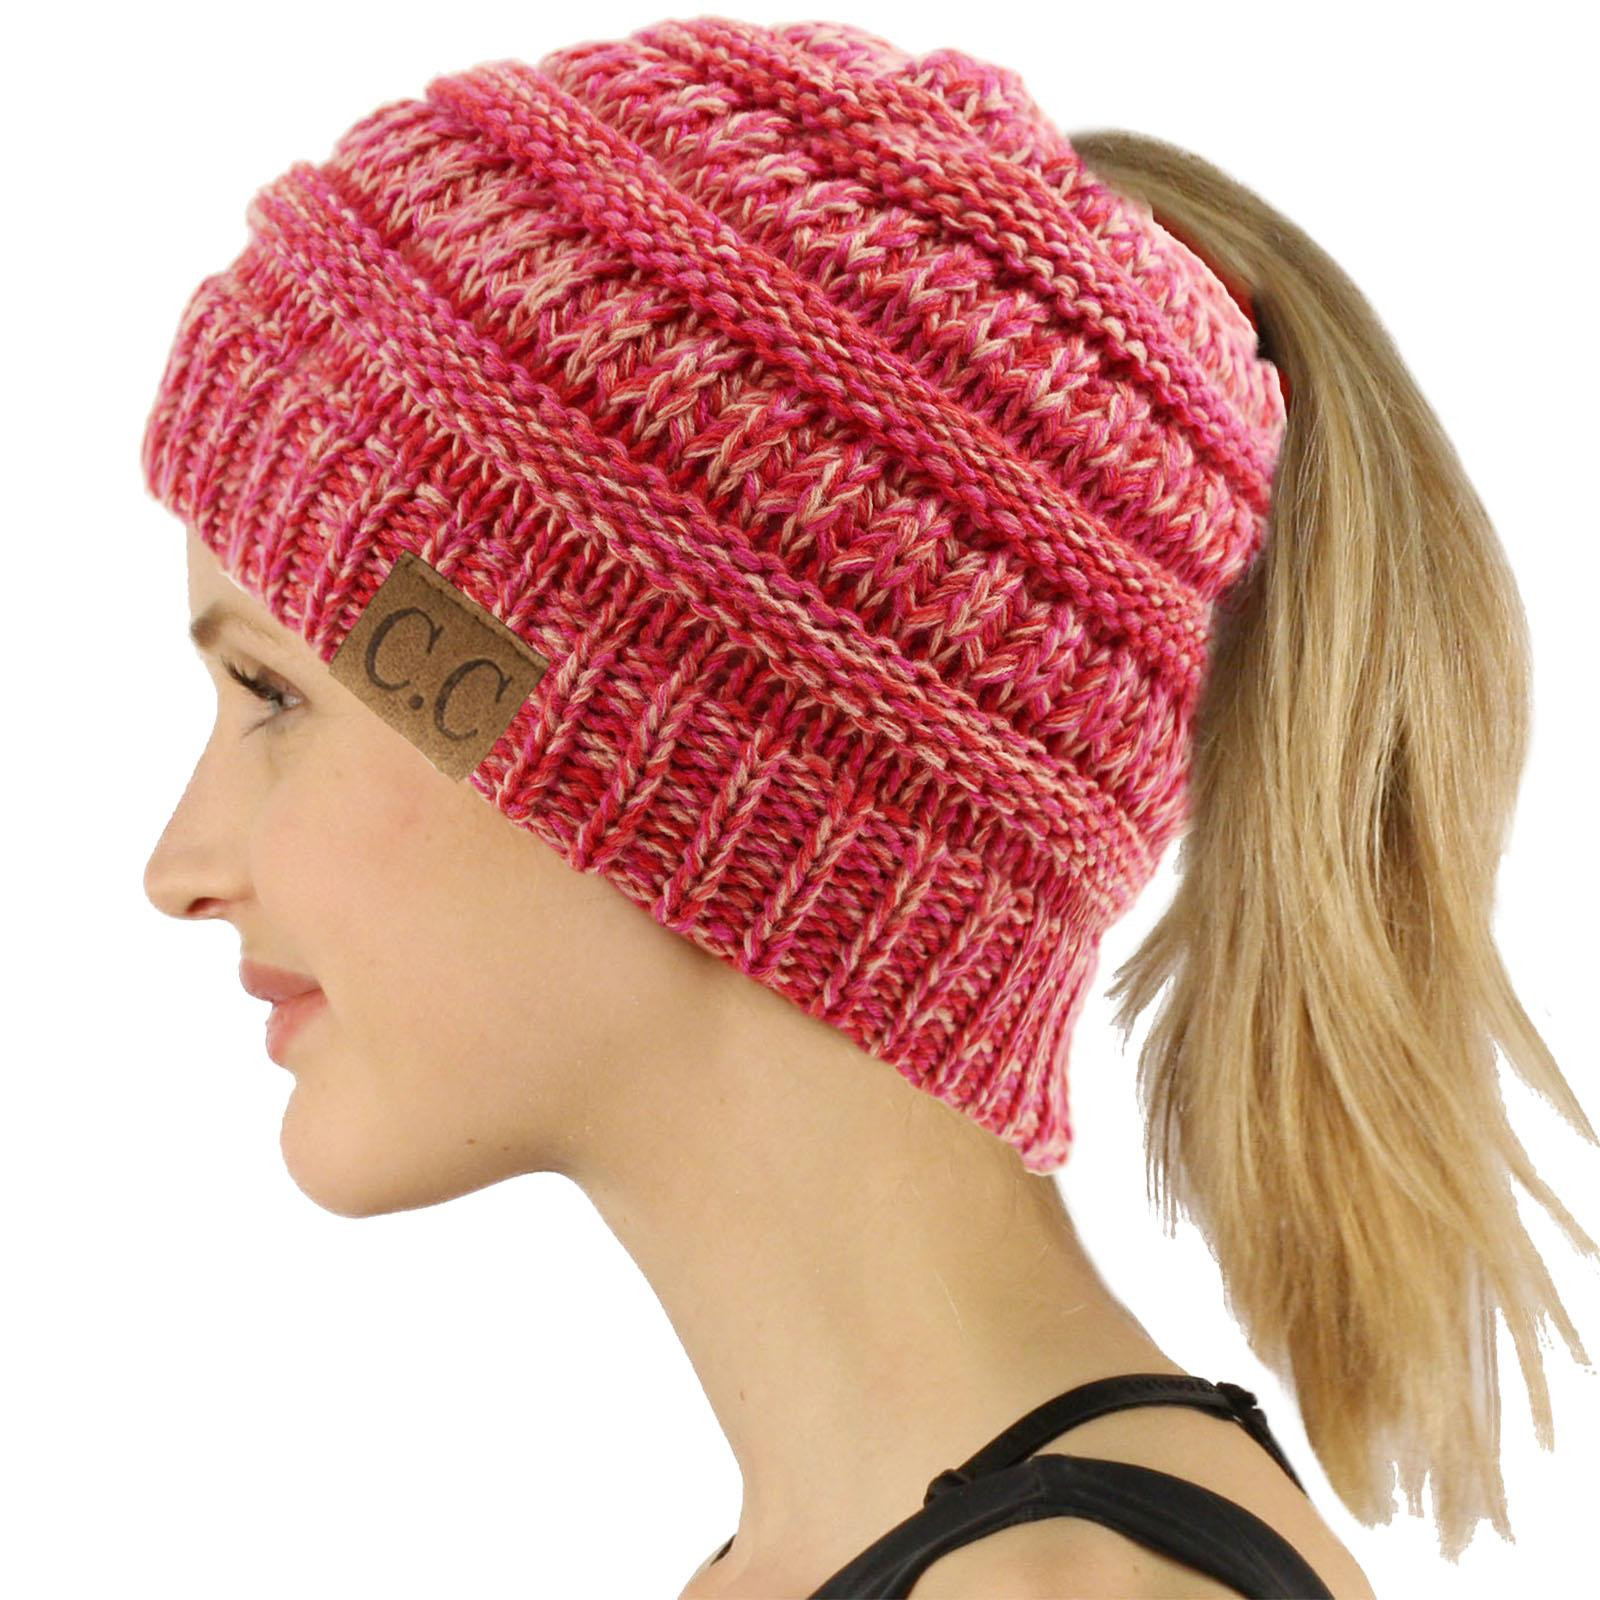 Messy Bun Beanie Hat Awesome Cc Beanietail Messy High Bun Ponytail Stretchy Knit Beanie Of Brilliant 47 Photos Messy Bun Beanie Hat